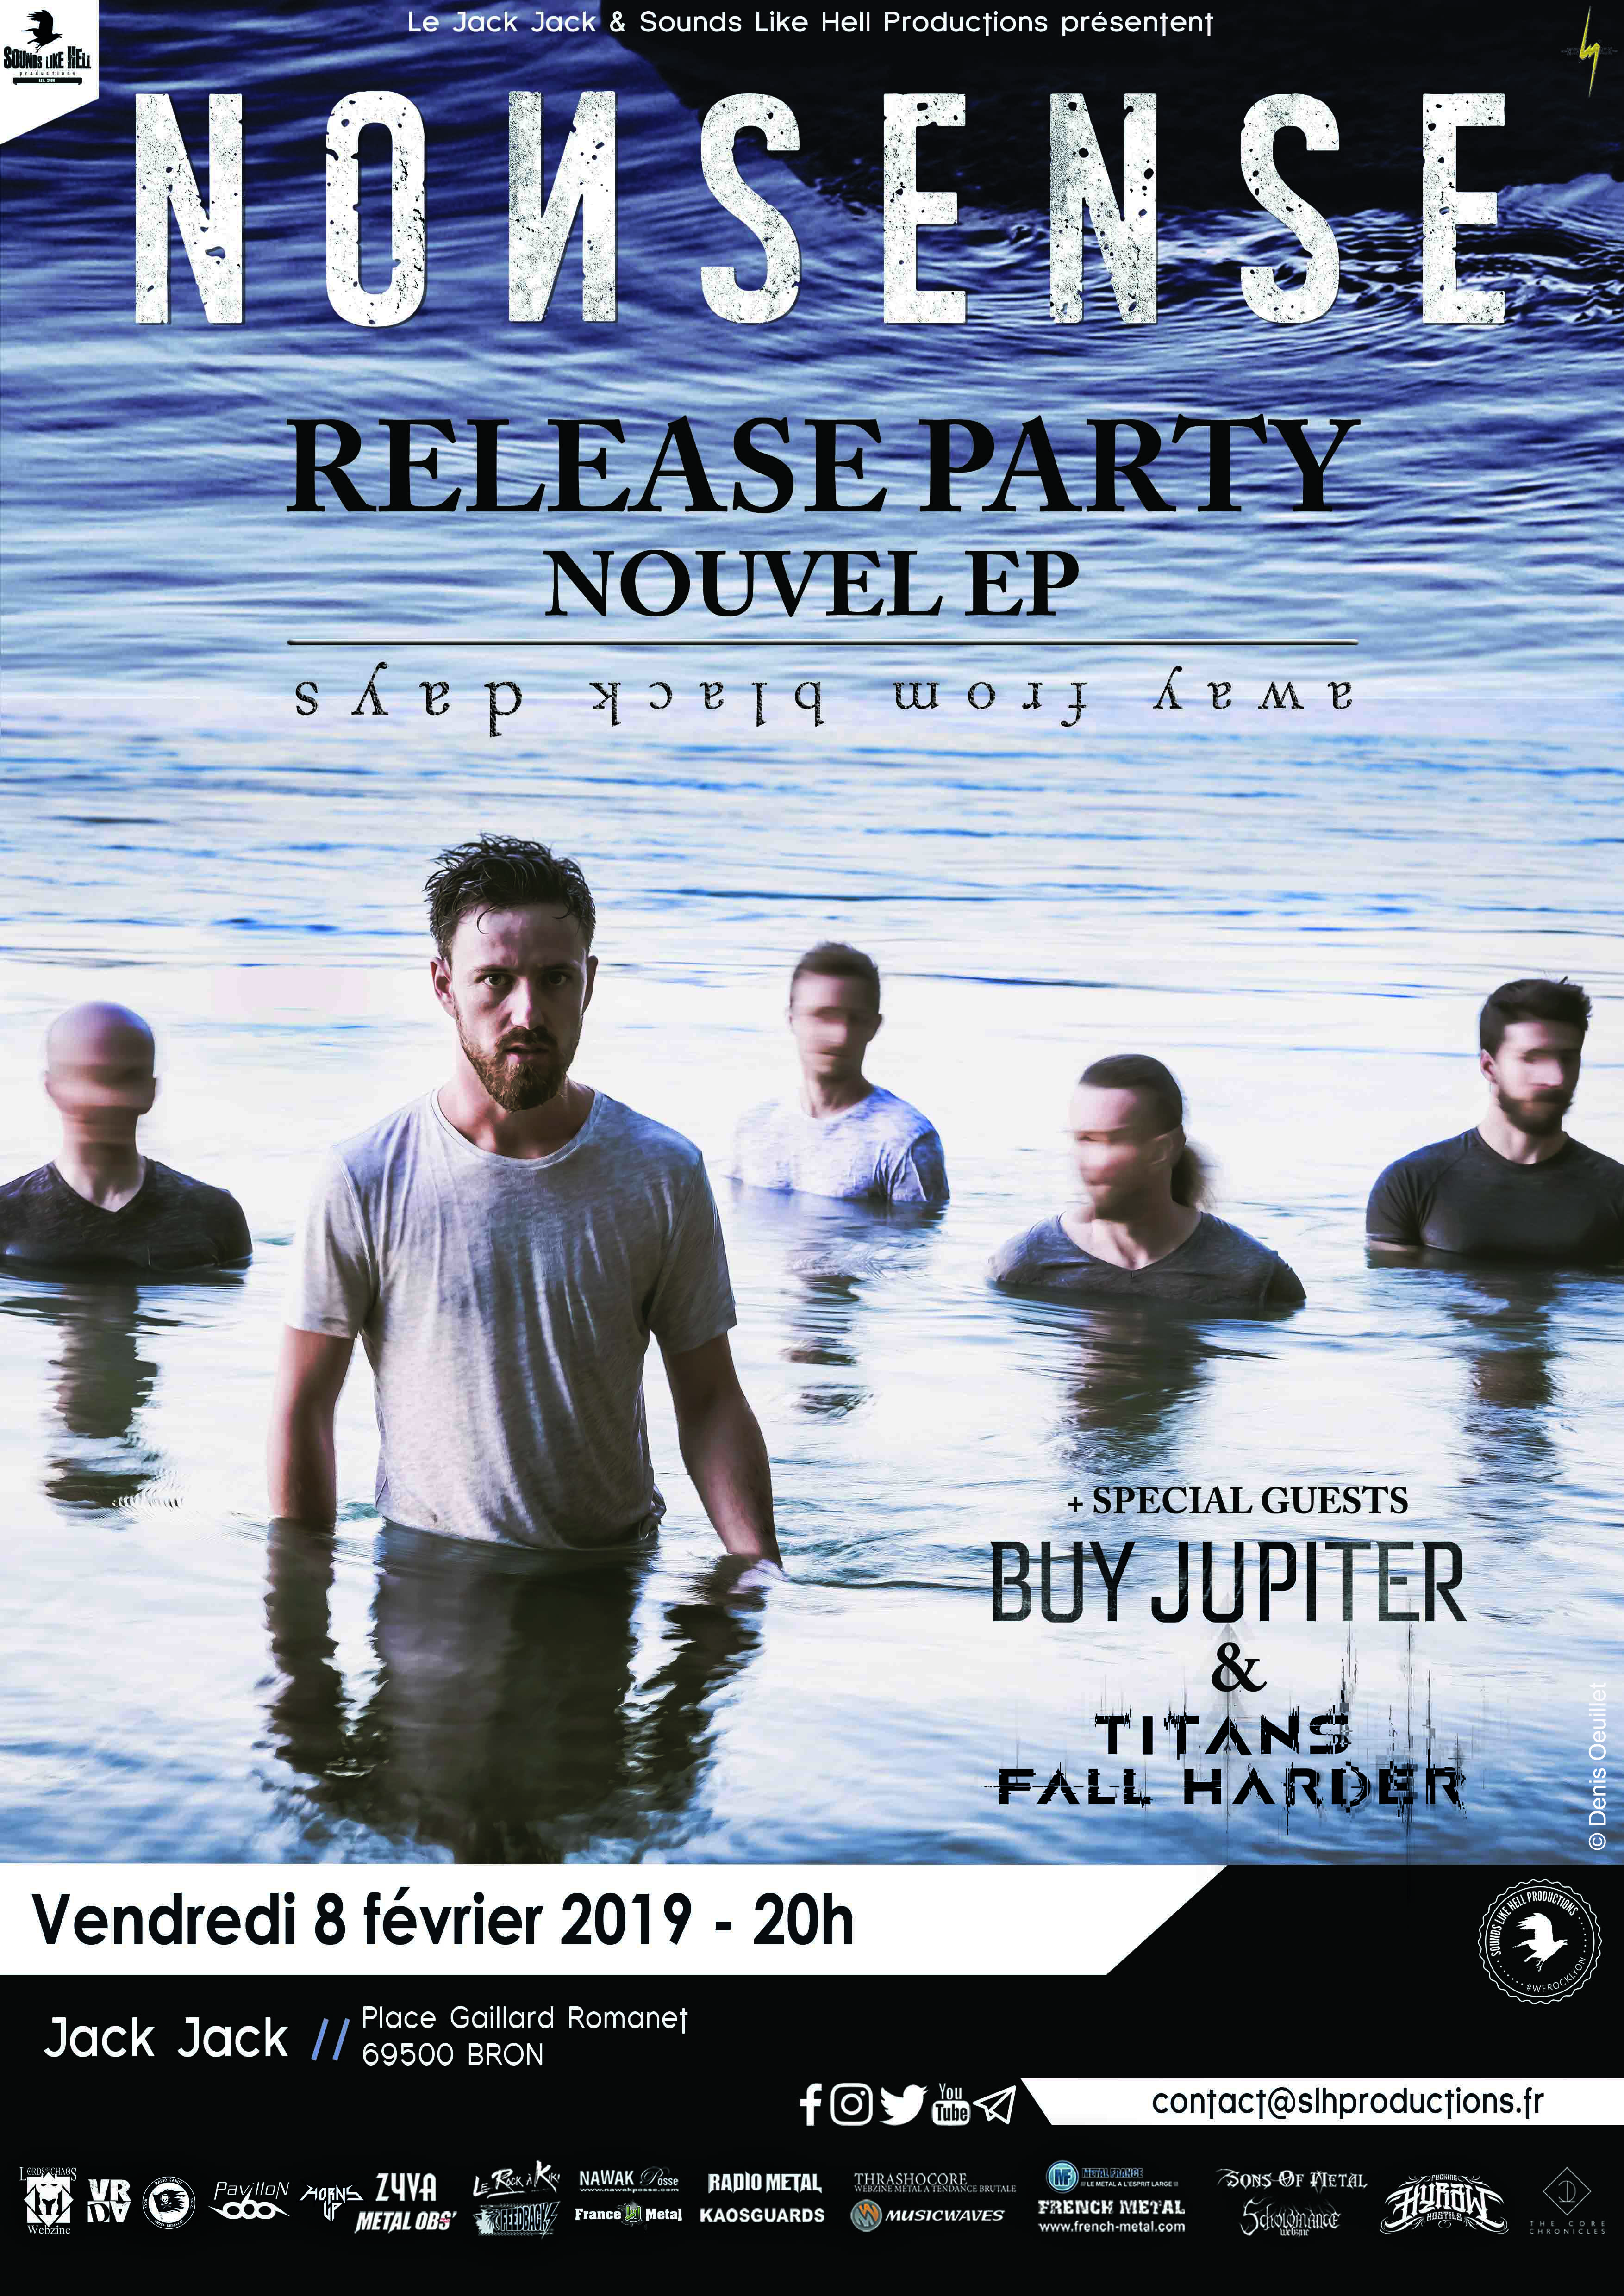 nonsense release party away from black days EP jack jack bron sounds like hell productions lyon buy Jupiter titans fall harder